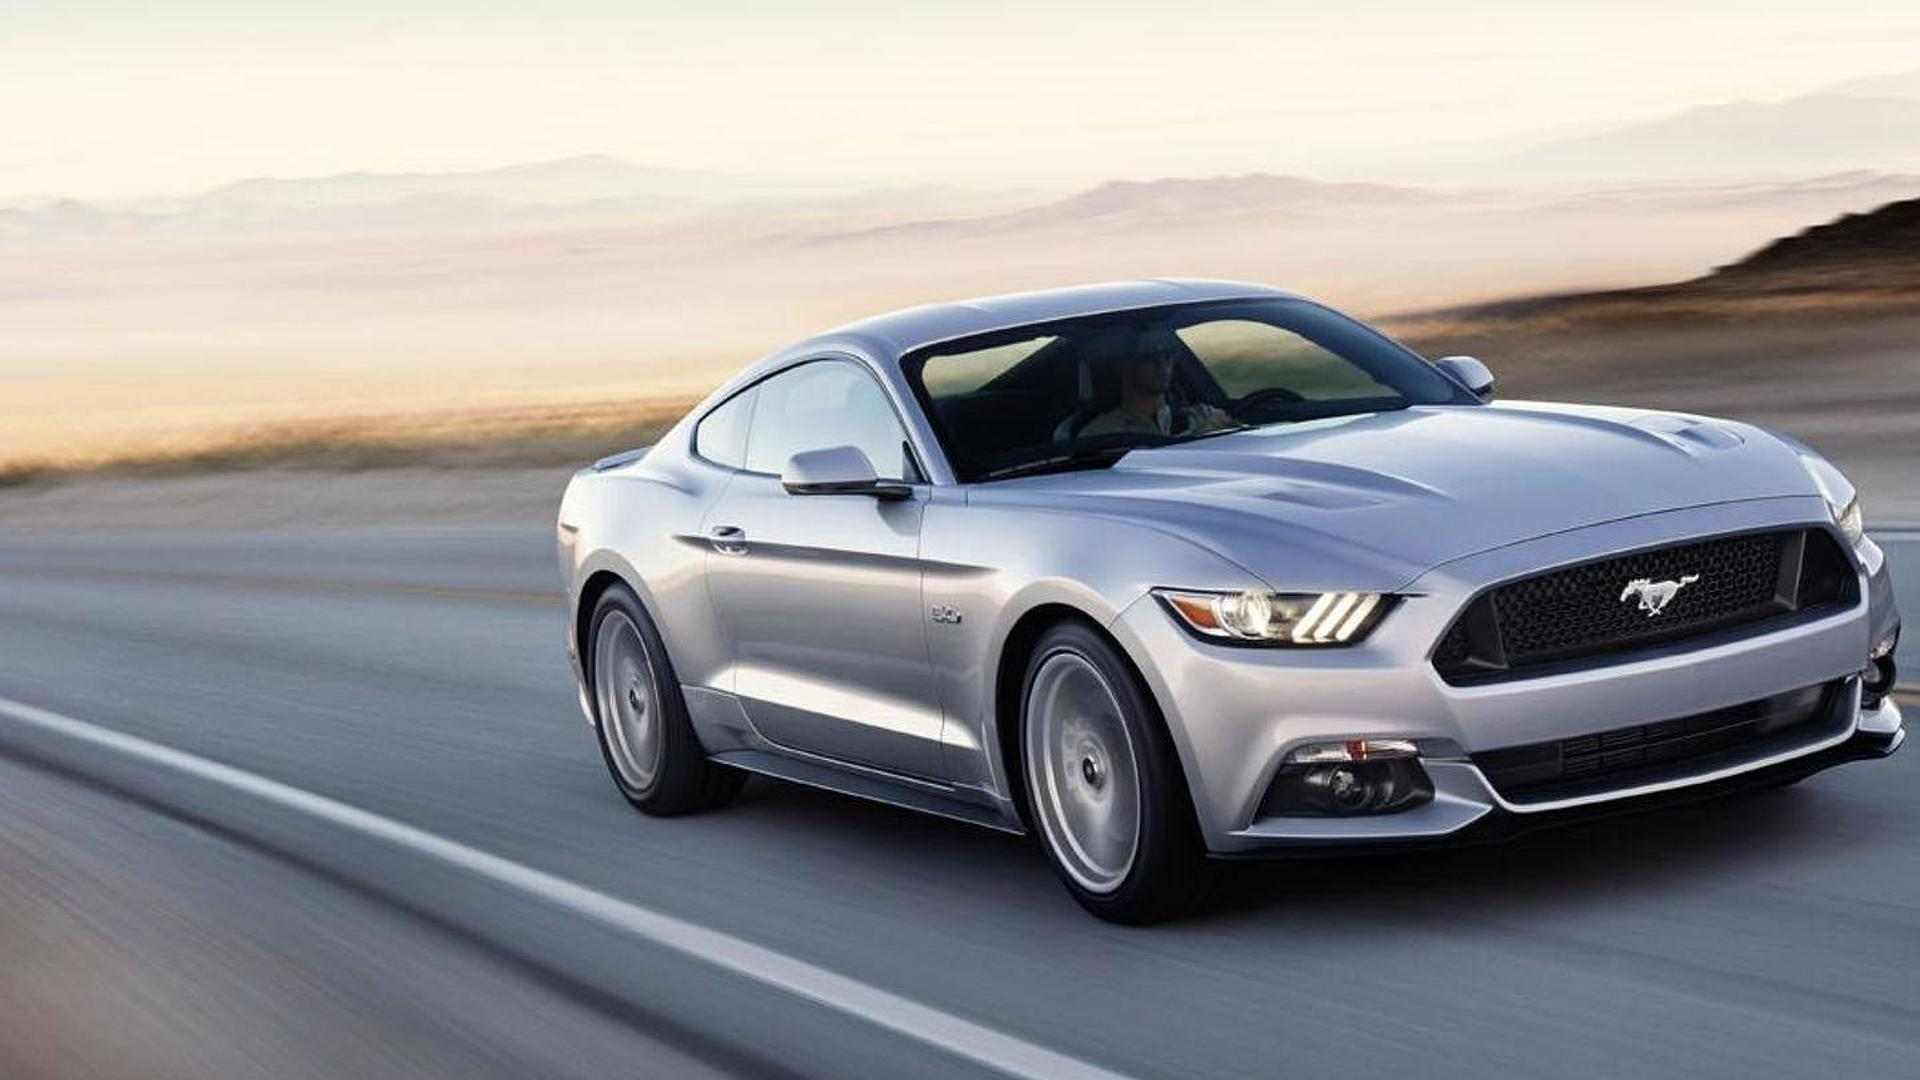 2015 Ford Mustang production starts on July 14